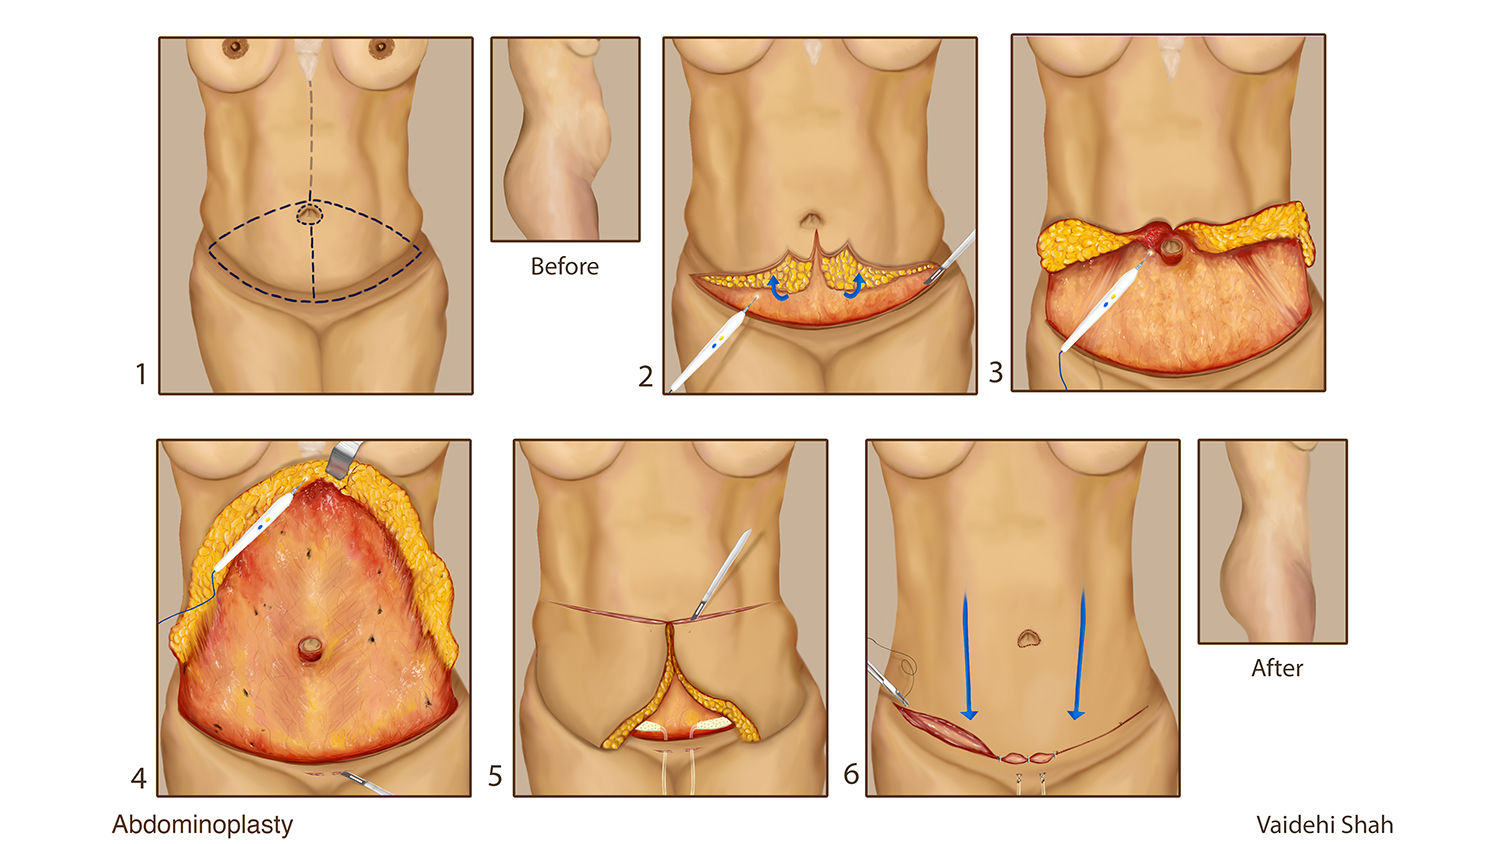 An illustration of an abdominoplasty